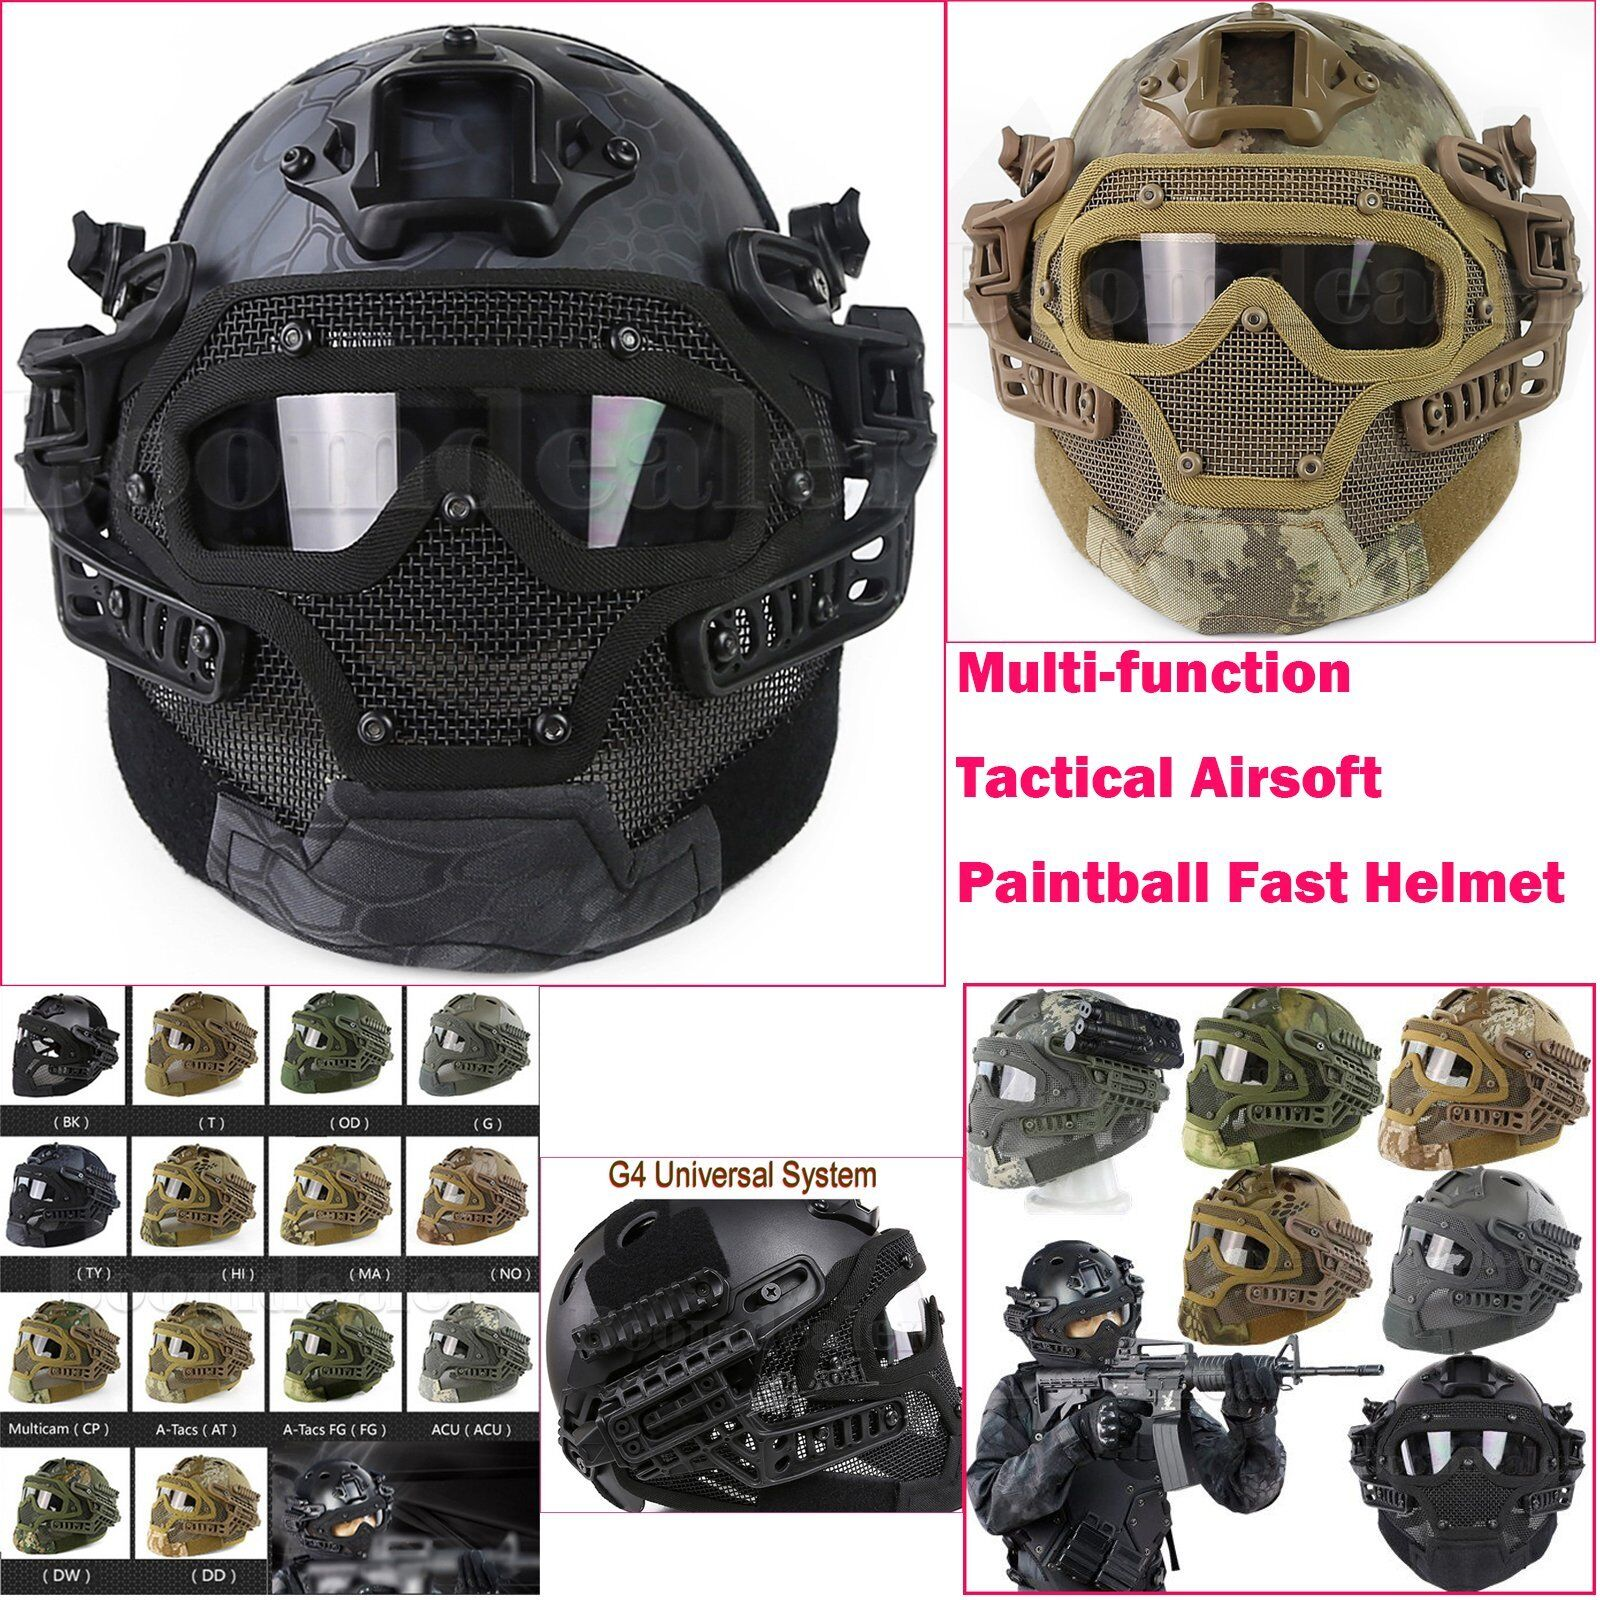 Airsoft Paintball Mask Goggles Fast Helmet & G4 System Predection Multi-function